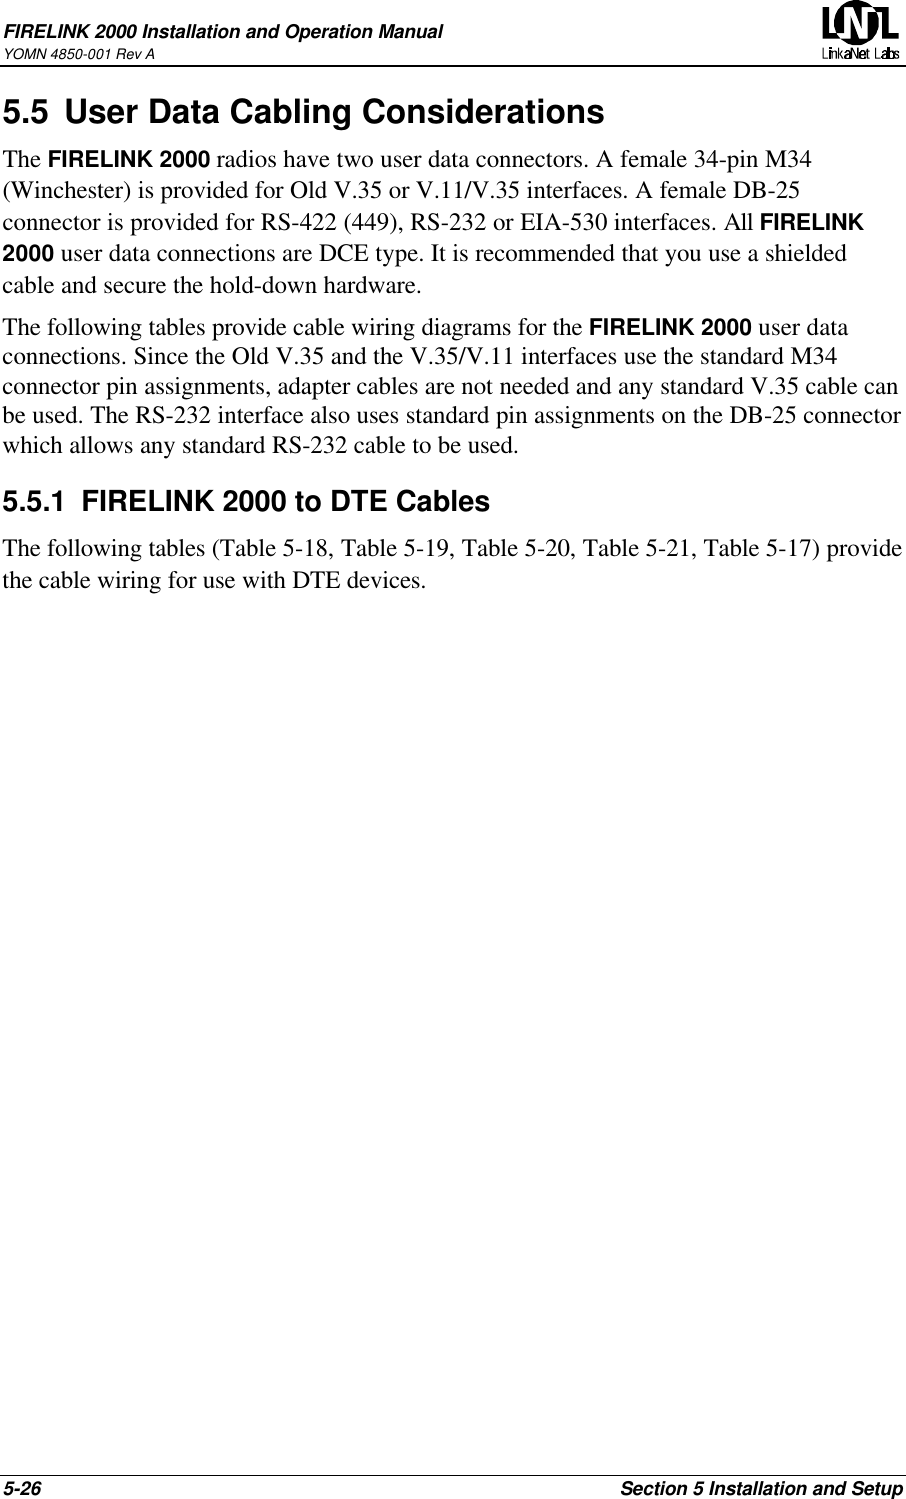 Linkanet Labs Lnl001 User Manual Firelink Rev 4 Standard Rs 232 Cable Schematic 2000 Installation And Operation Manualyomn 4850 001 A5 26 Section 5